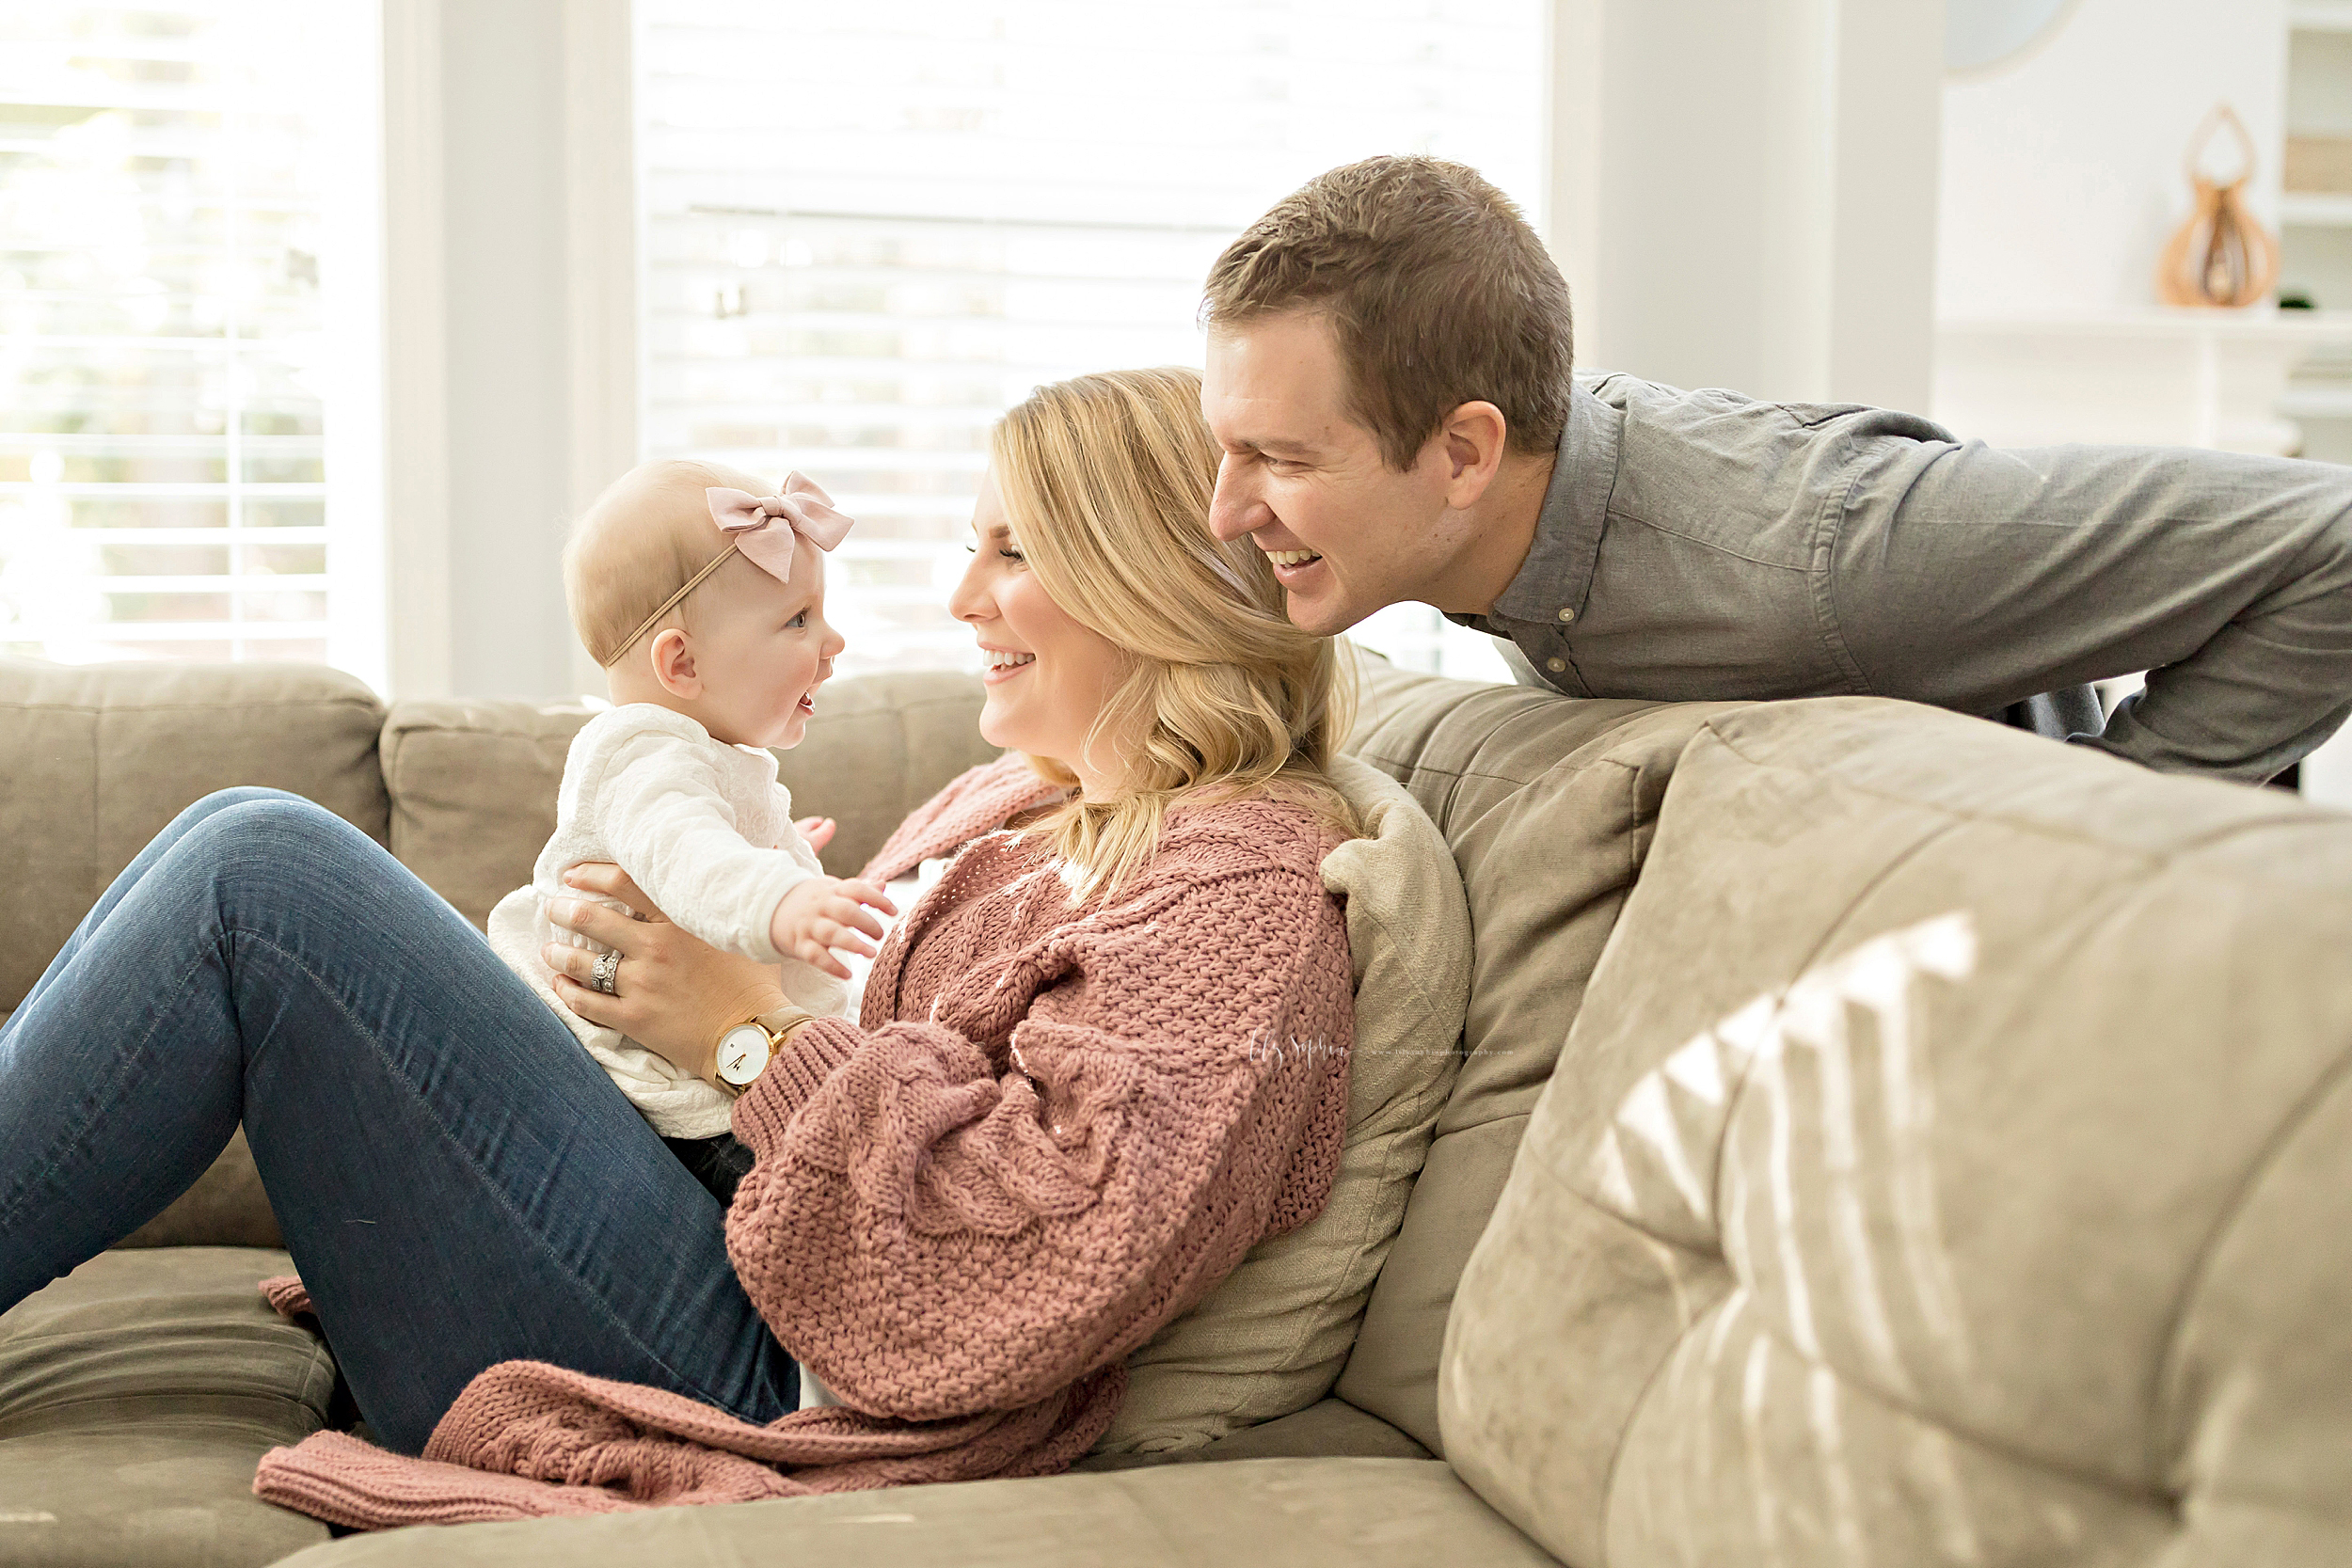 atlanta-midtown-brookhaven-ashford-dunwoody-virginia-highlands-roswell-decatur-lily-sophia-photography-in-home-six-month-milestone-family-lifestyle-session-sandy-springs_0654.jpg